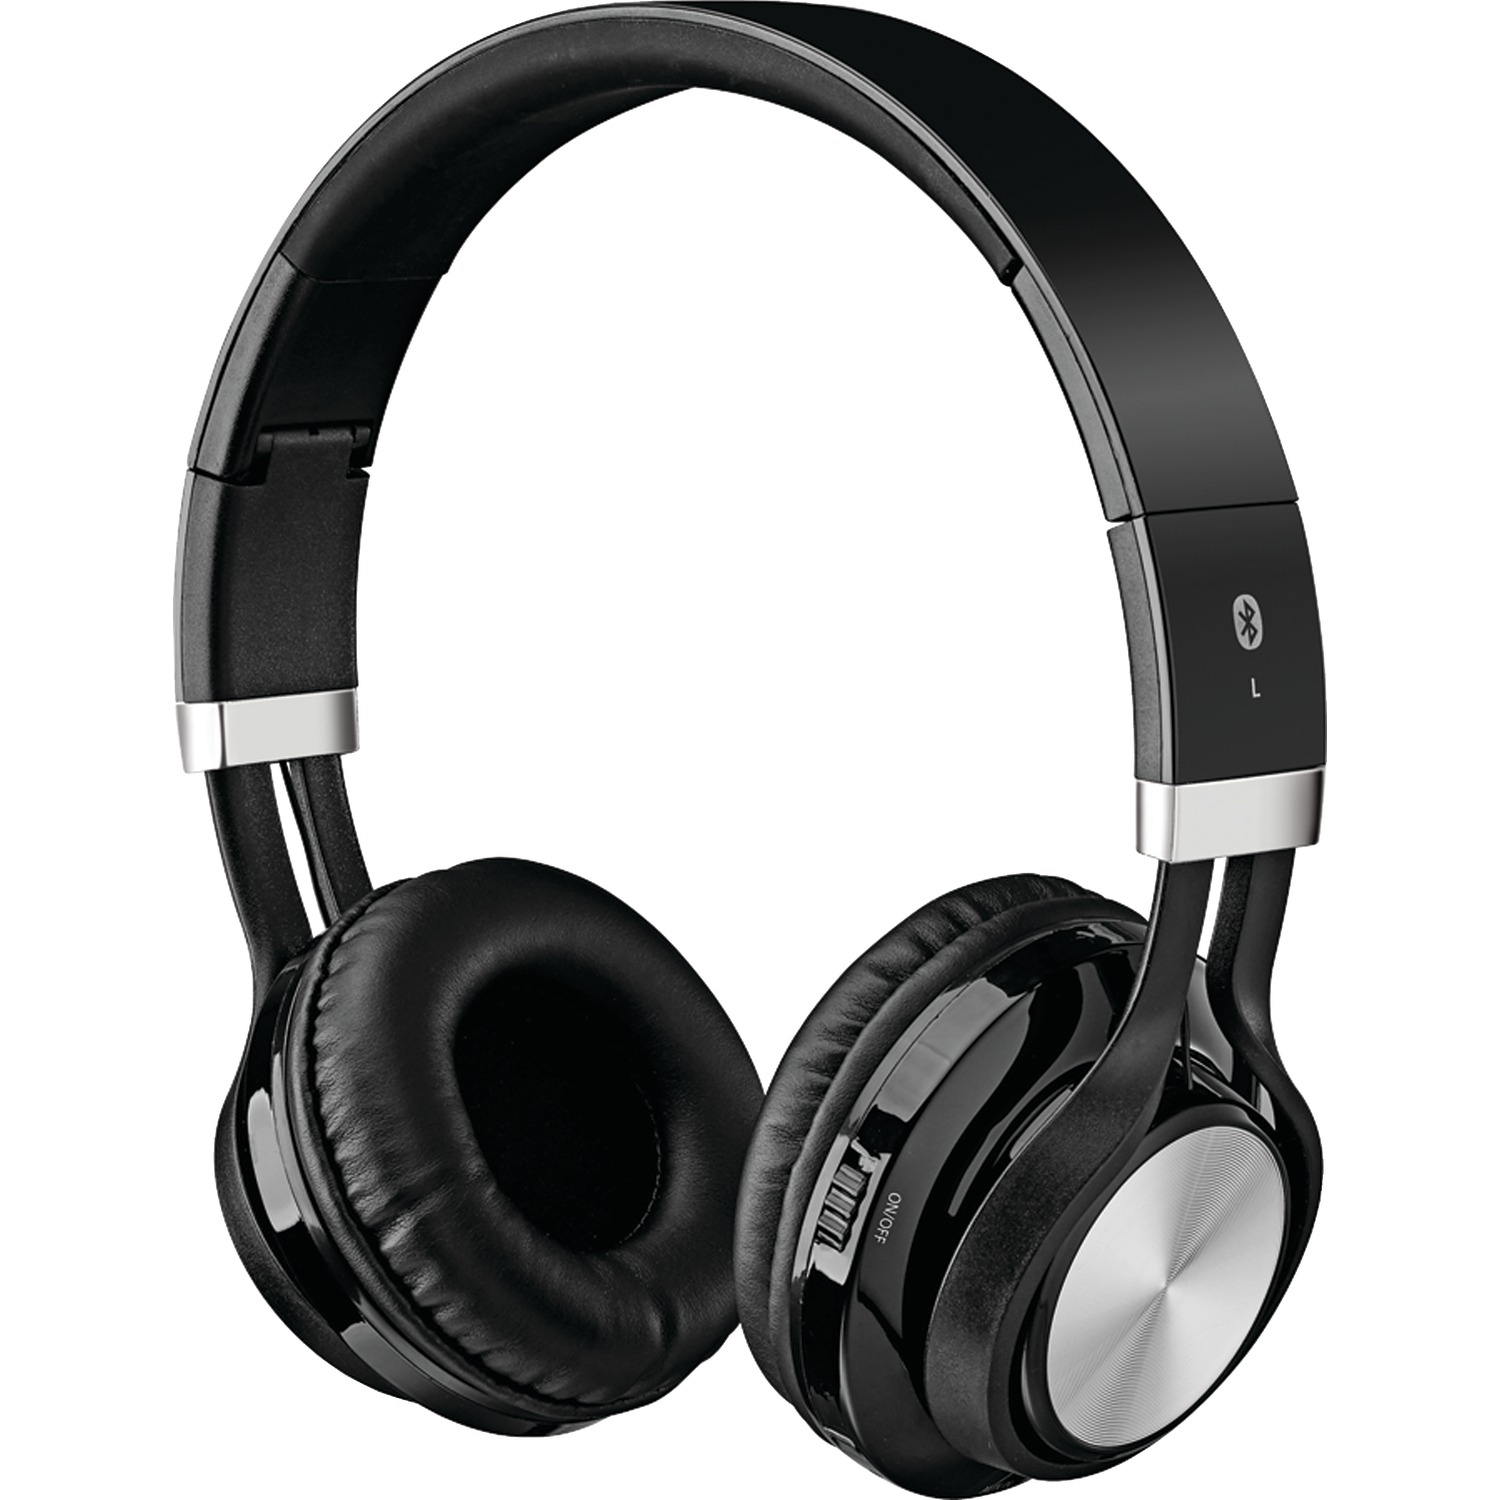 ilive iahb56b bluetooth r headphones with microphone black. Black Bedroom Furniture Sets. Home Design Ideas